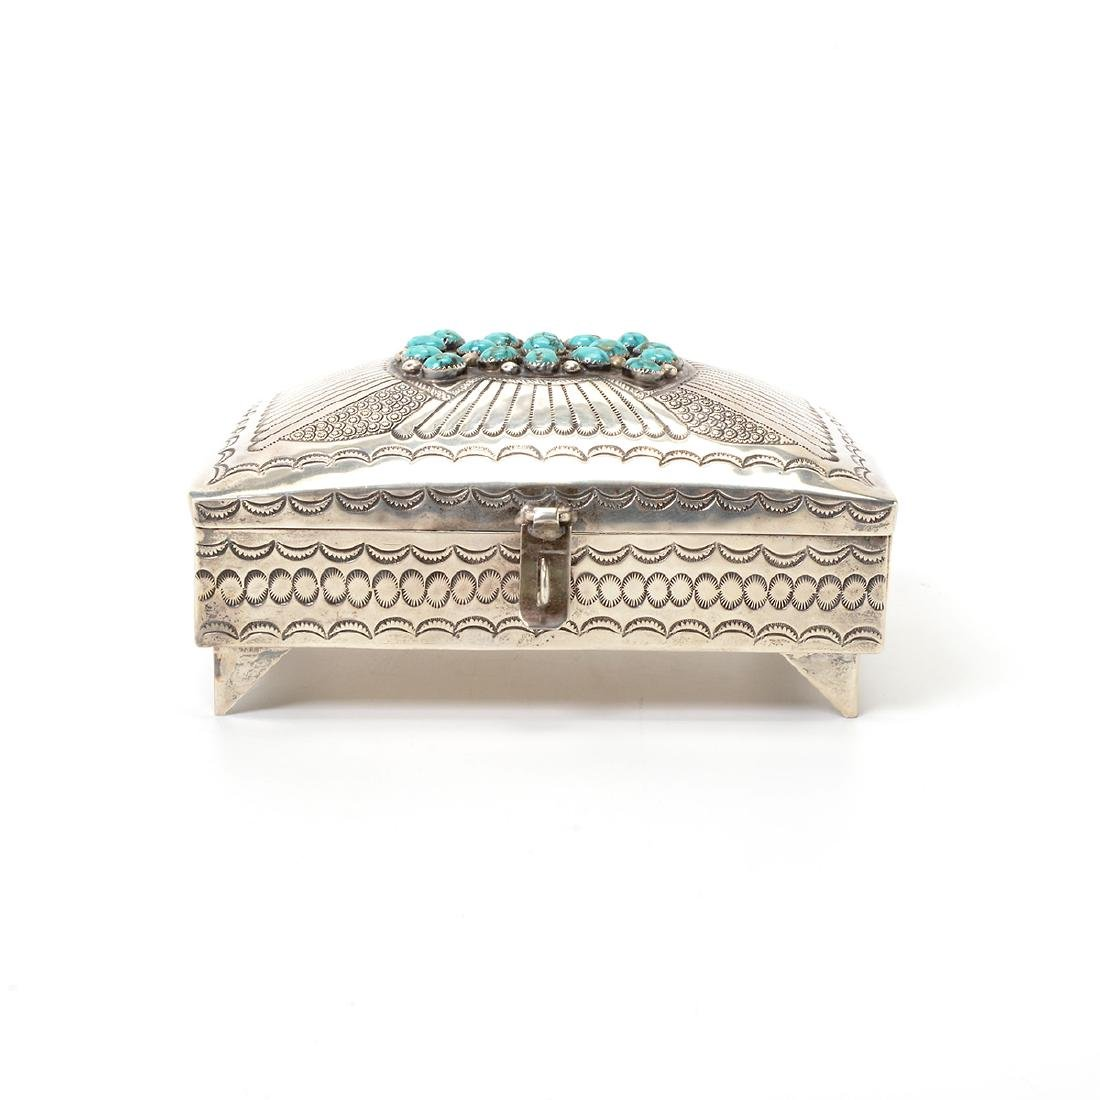 Navajo Turquoise Mounted Sterling Box - 2